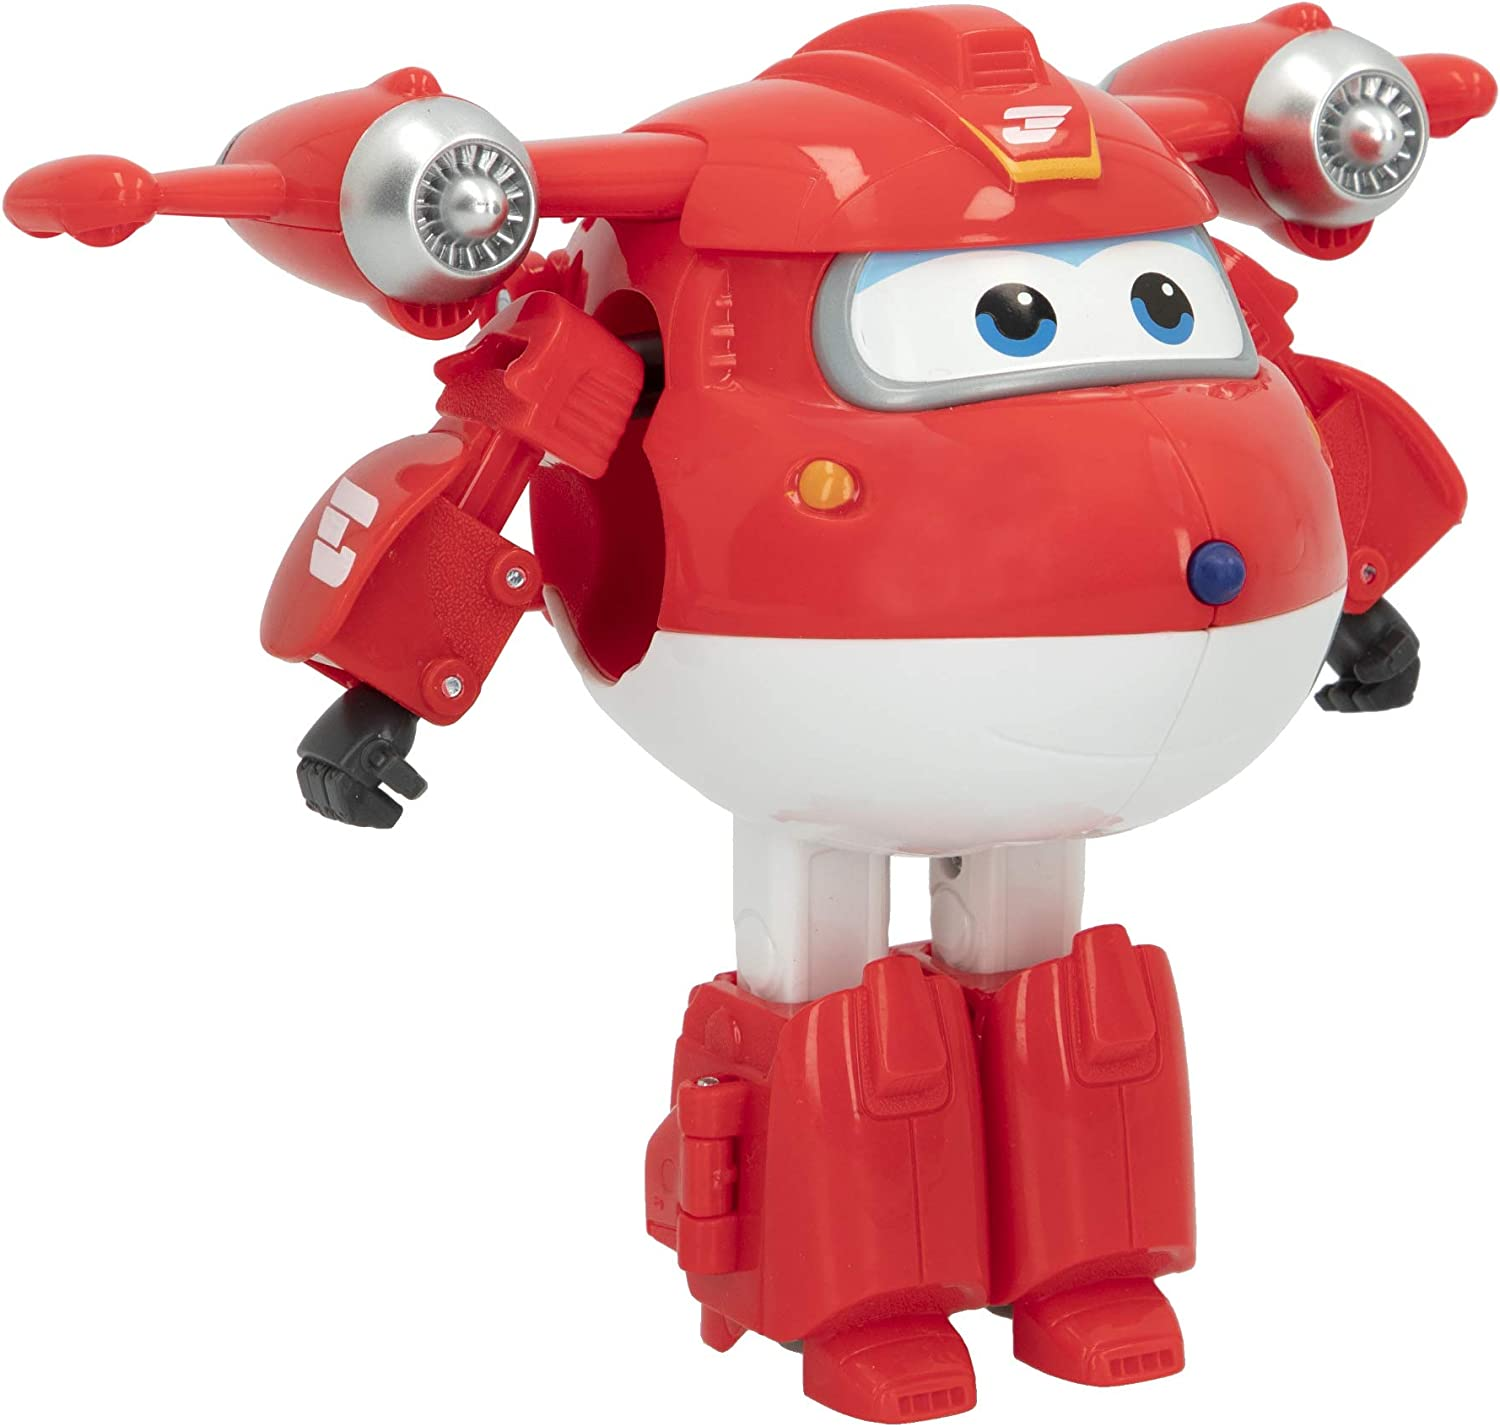 Super Wings - Figura Jett Super Wings transformable, Superwings transformables, Figuras de juguete, Robot Avión Juguete, Superwings transformables, Super Alas, Avión juguete, Super Wings juguetes